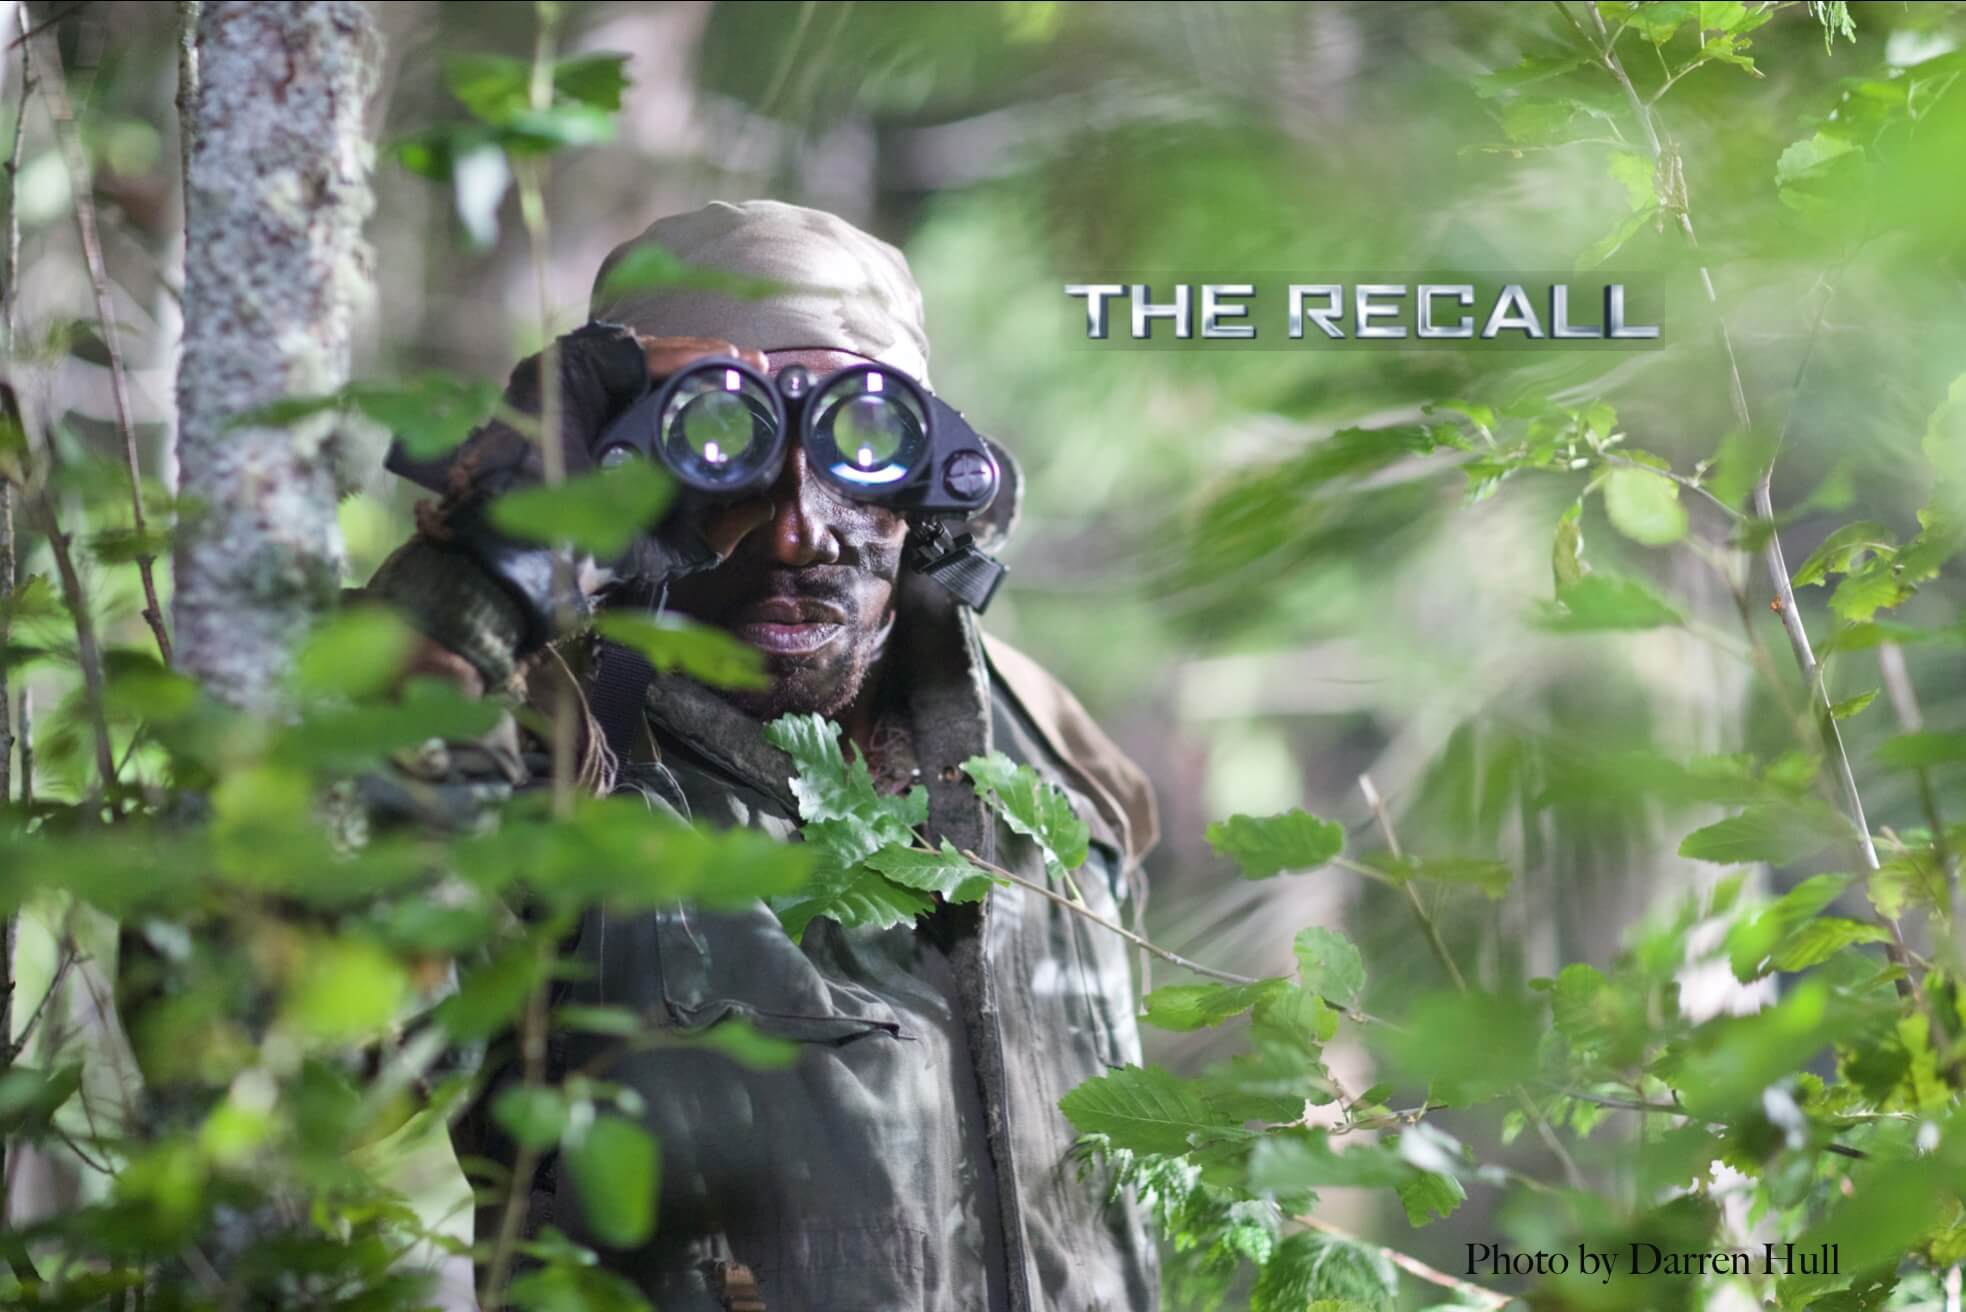 Wesley Snipes the recall abduction2 1 - Wesley Snipes Fights Aliens in The Recall VR Abduction